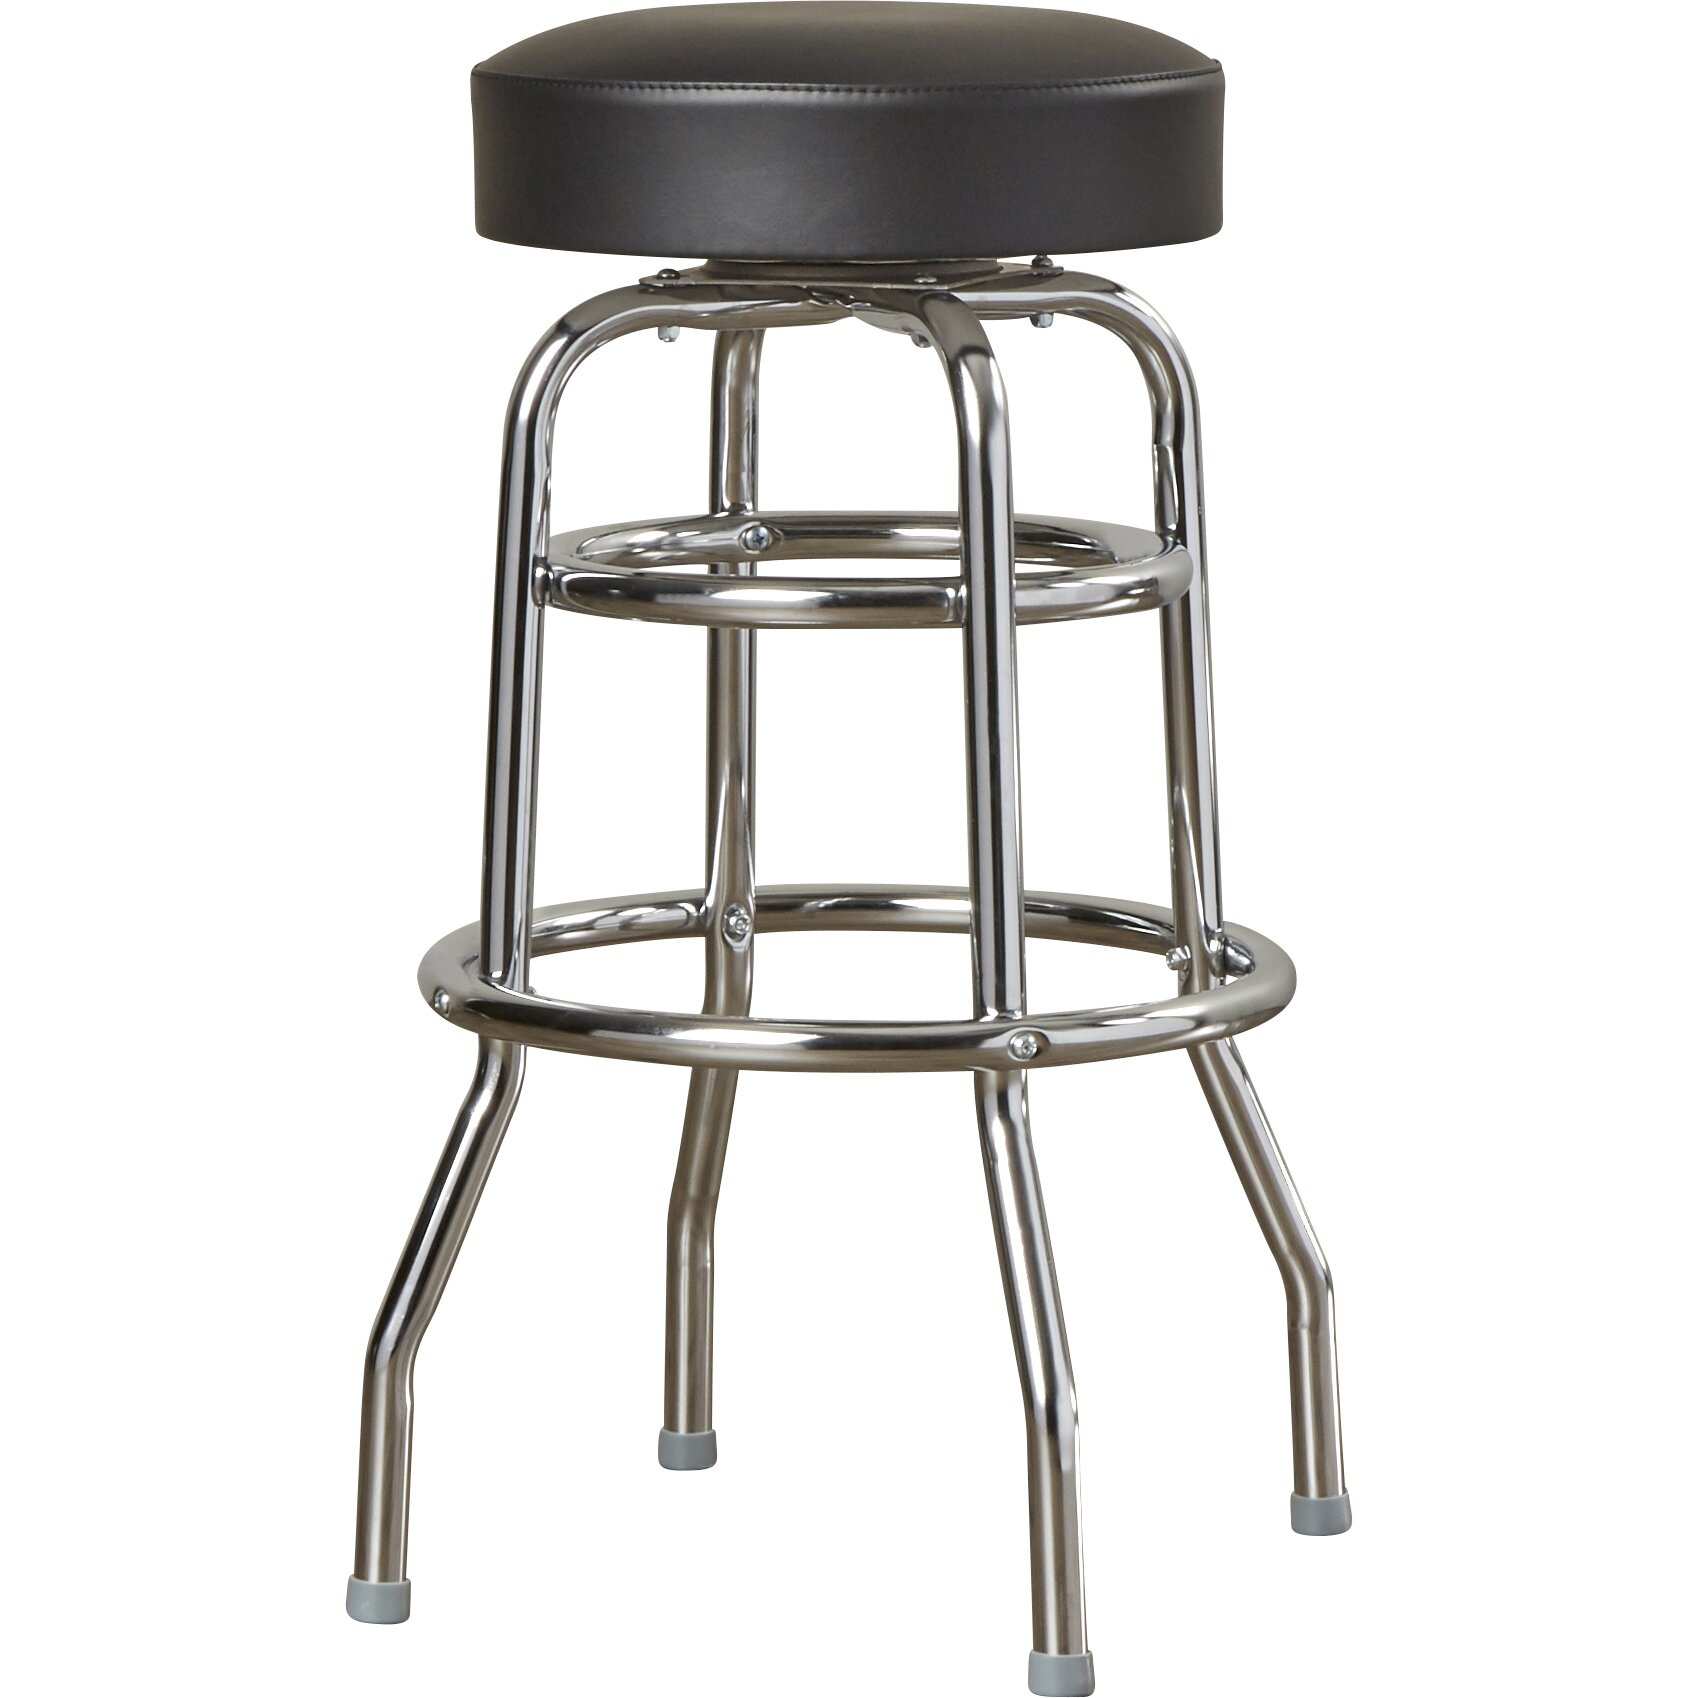 48 Home Bar Stool Spacing Proper Bar Stool Height  : Richardson Seating Retro Home 30 Swivel Bar Stool from www.nhtfurnitures.com size 1698 x 1698 jpeg 227kB